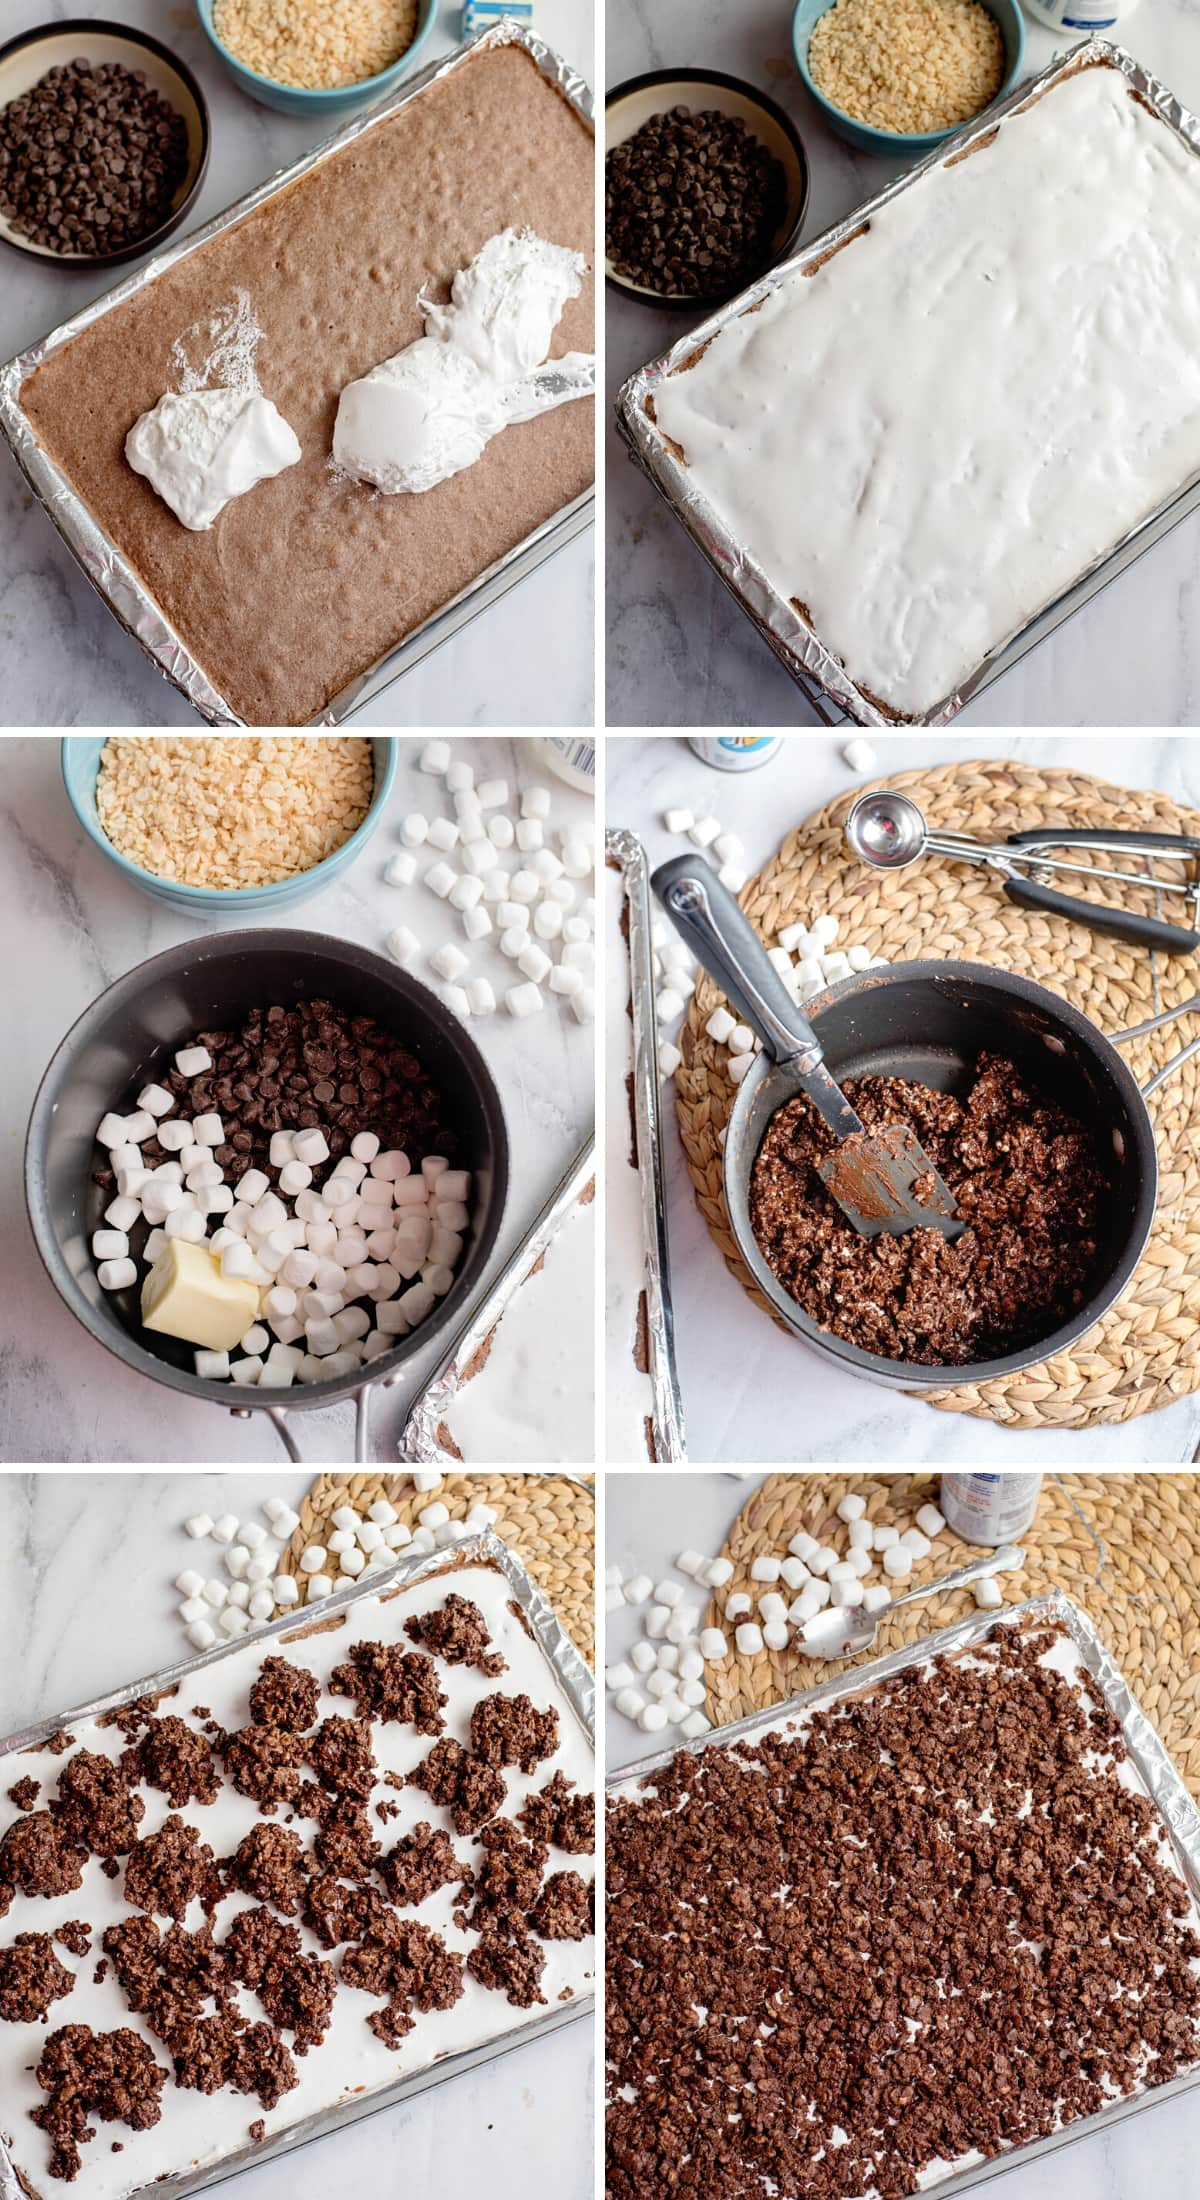 deluxe chocolate marshmallow bar step by step